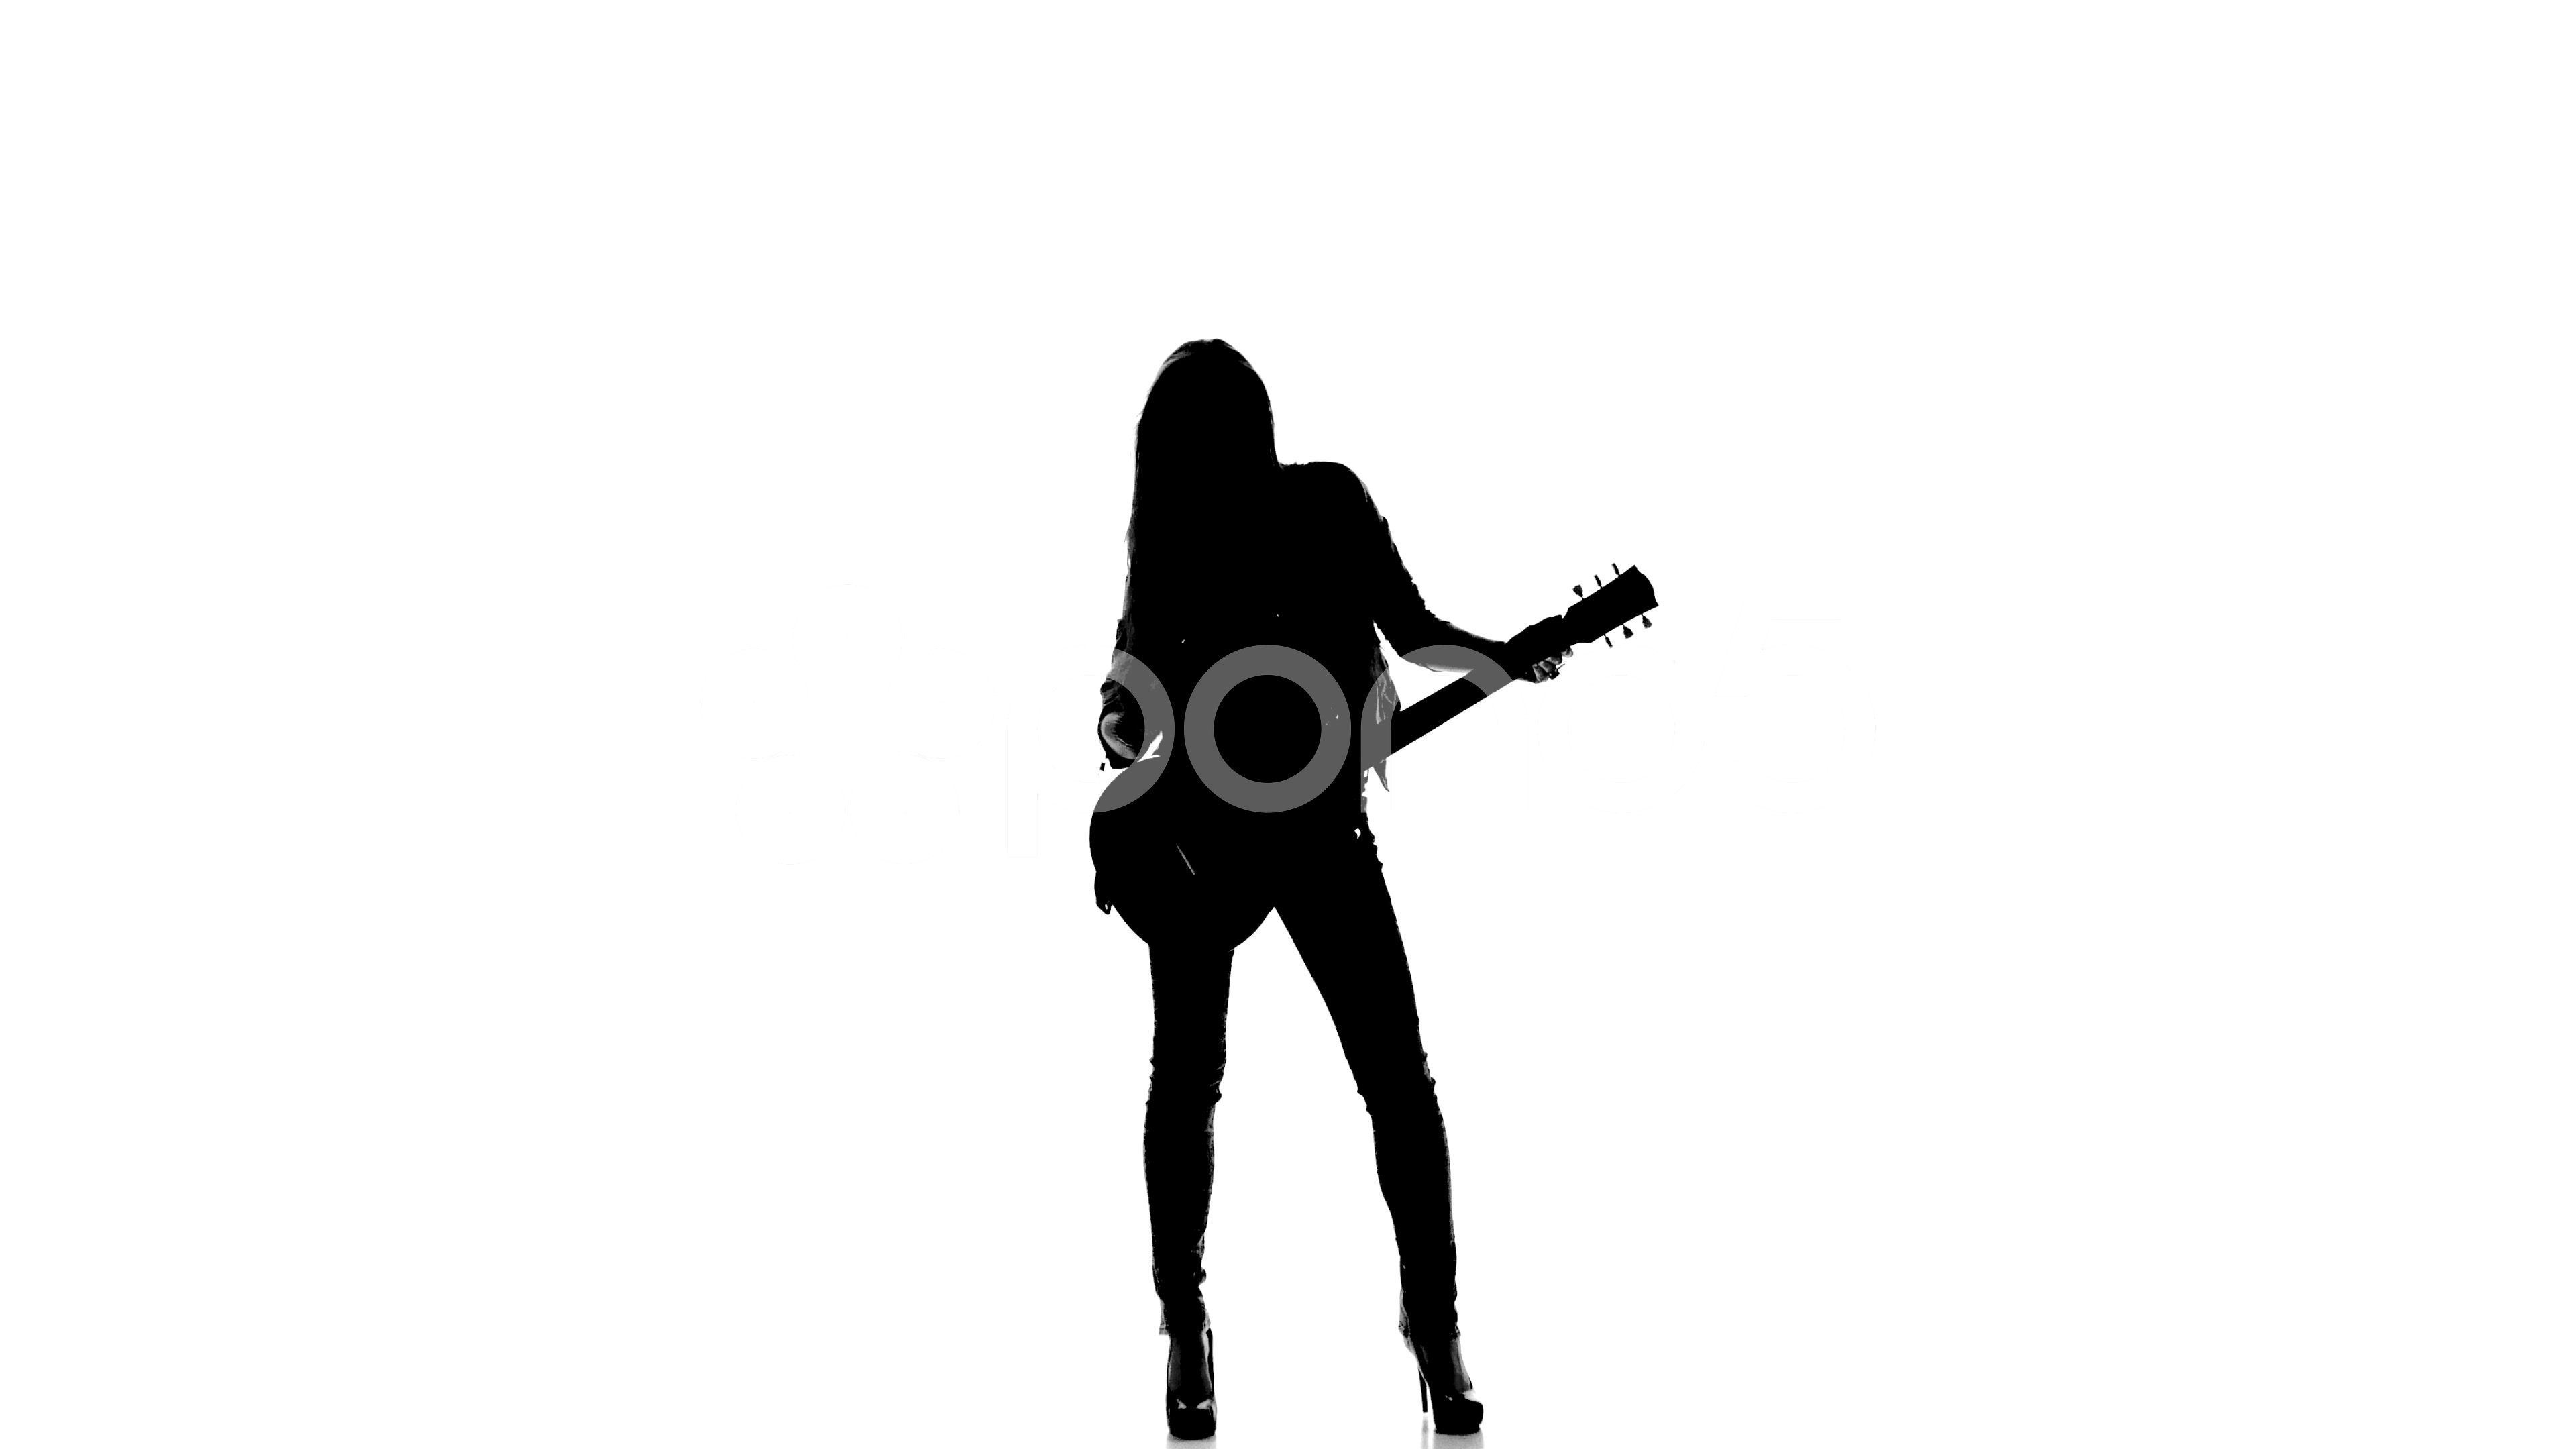 3840x2160 Silhouette Of Young Girl Playing Dancing On Electric Guitar On